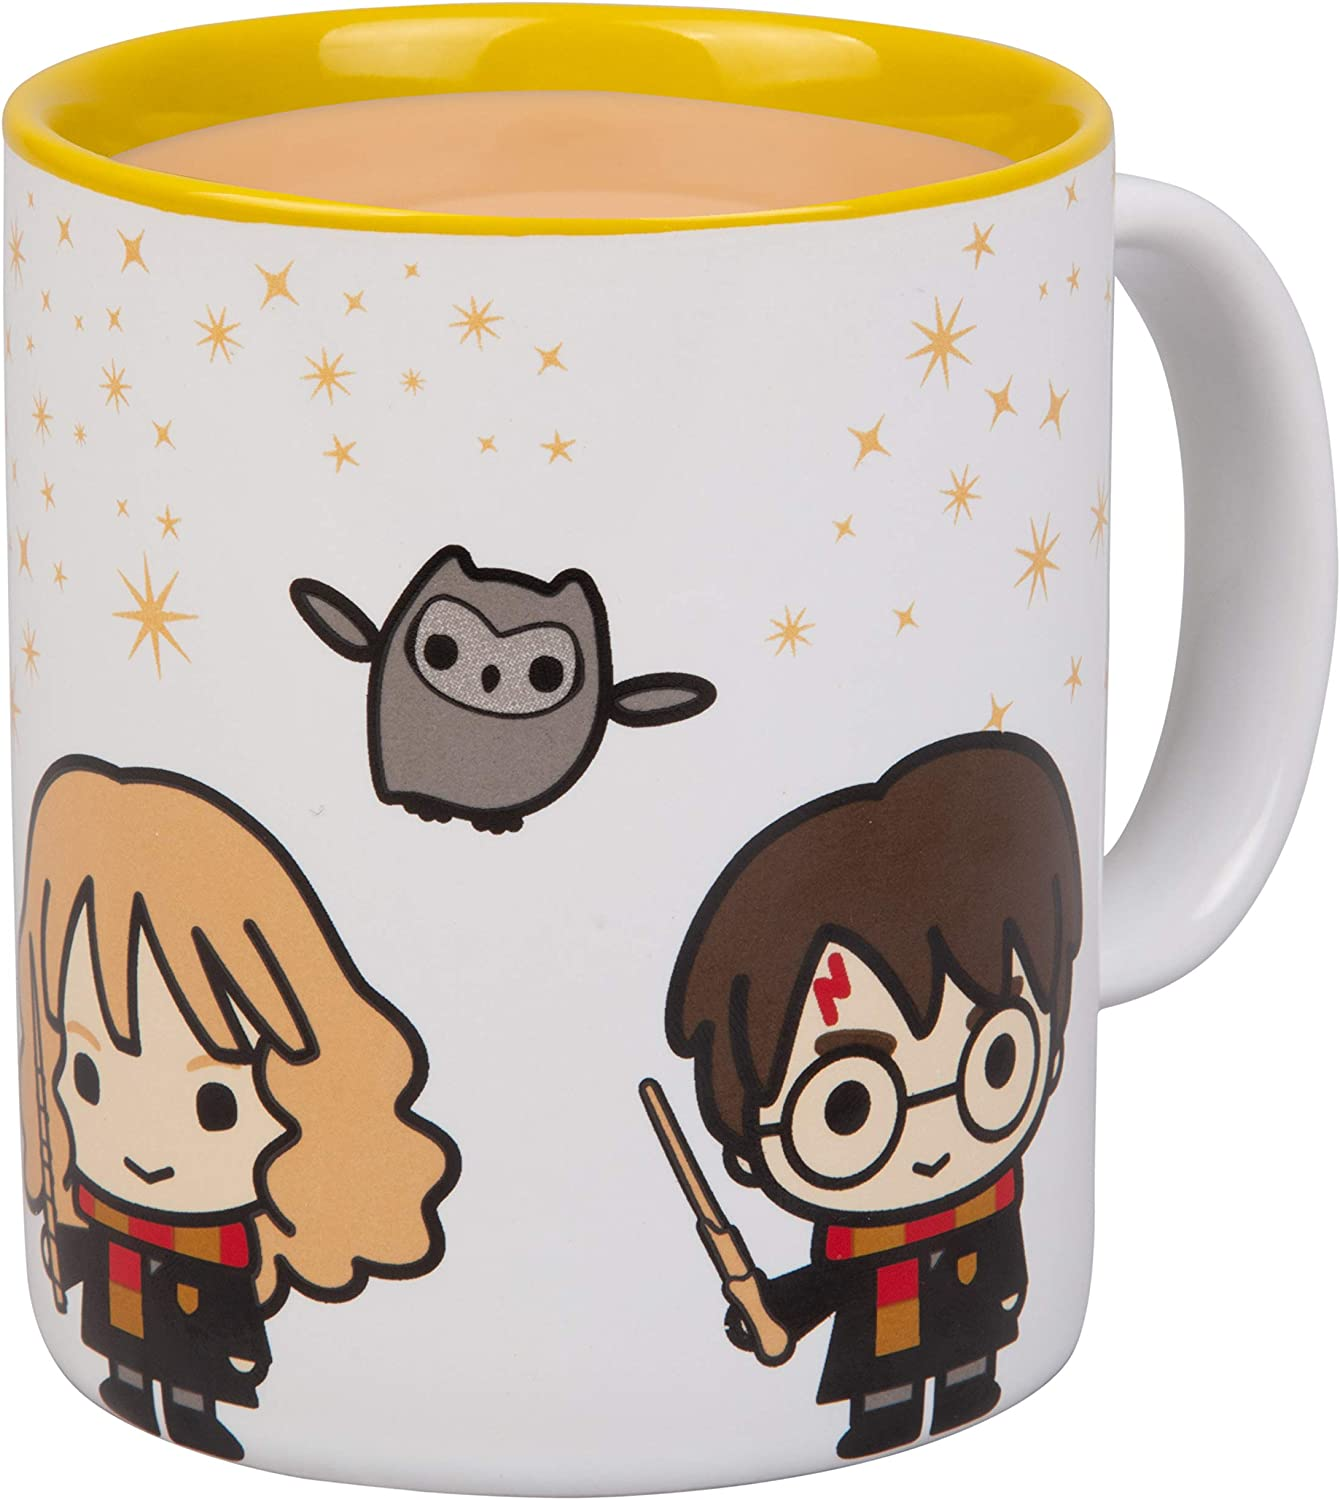 Harry Same day shipping Potter Chibi Ceramic Ranking TOP12 Coffee - Ron and Hermione Mug